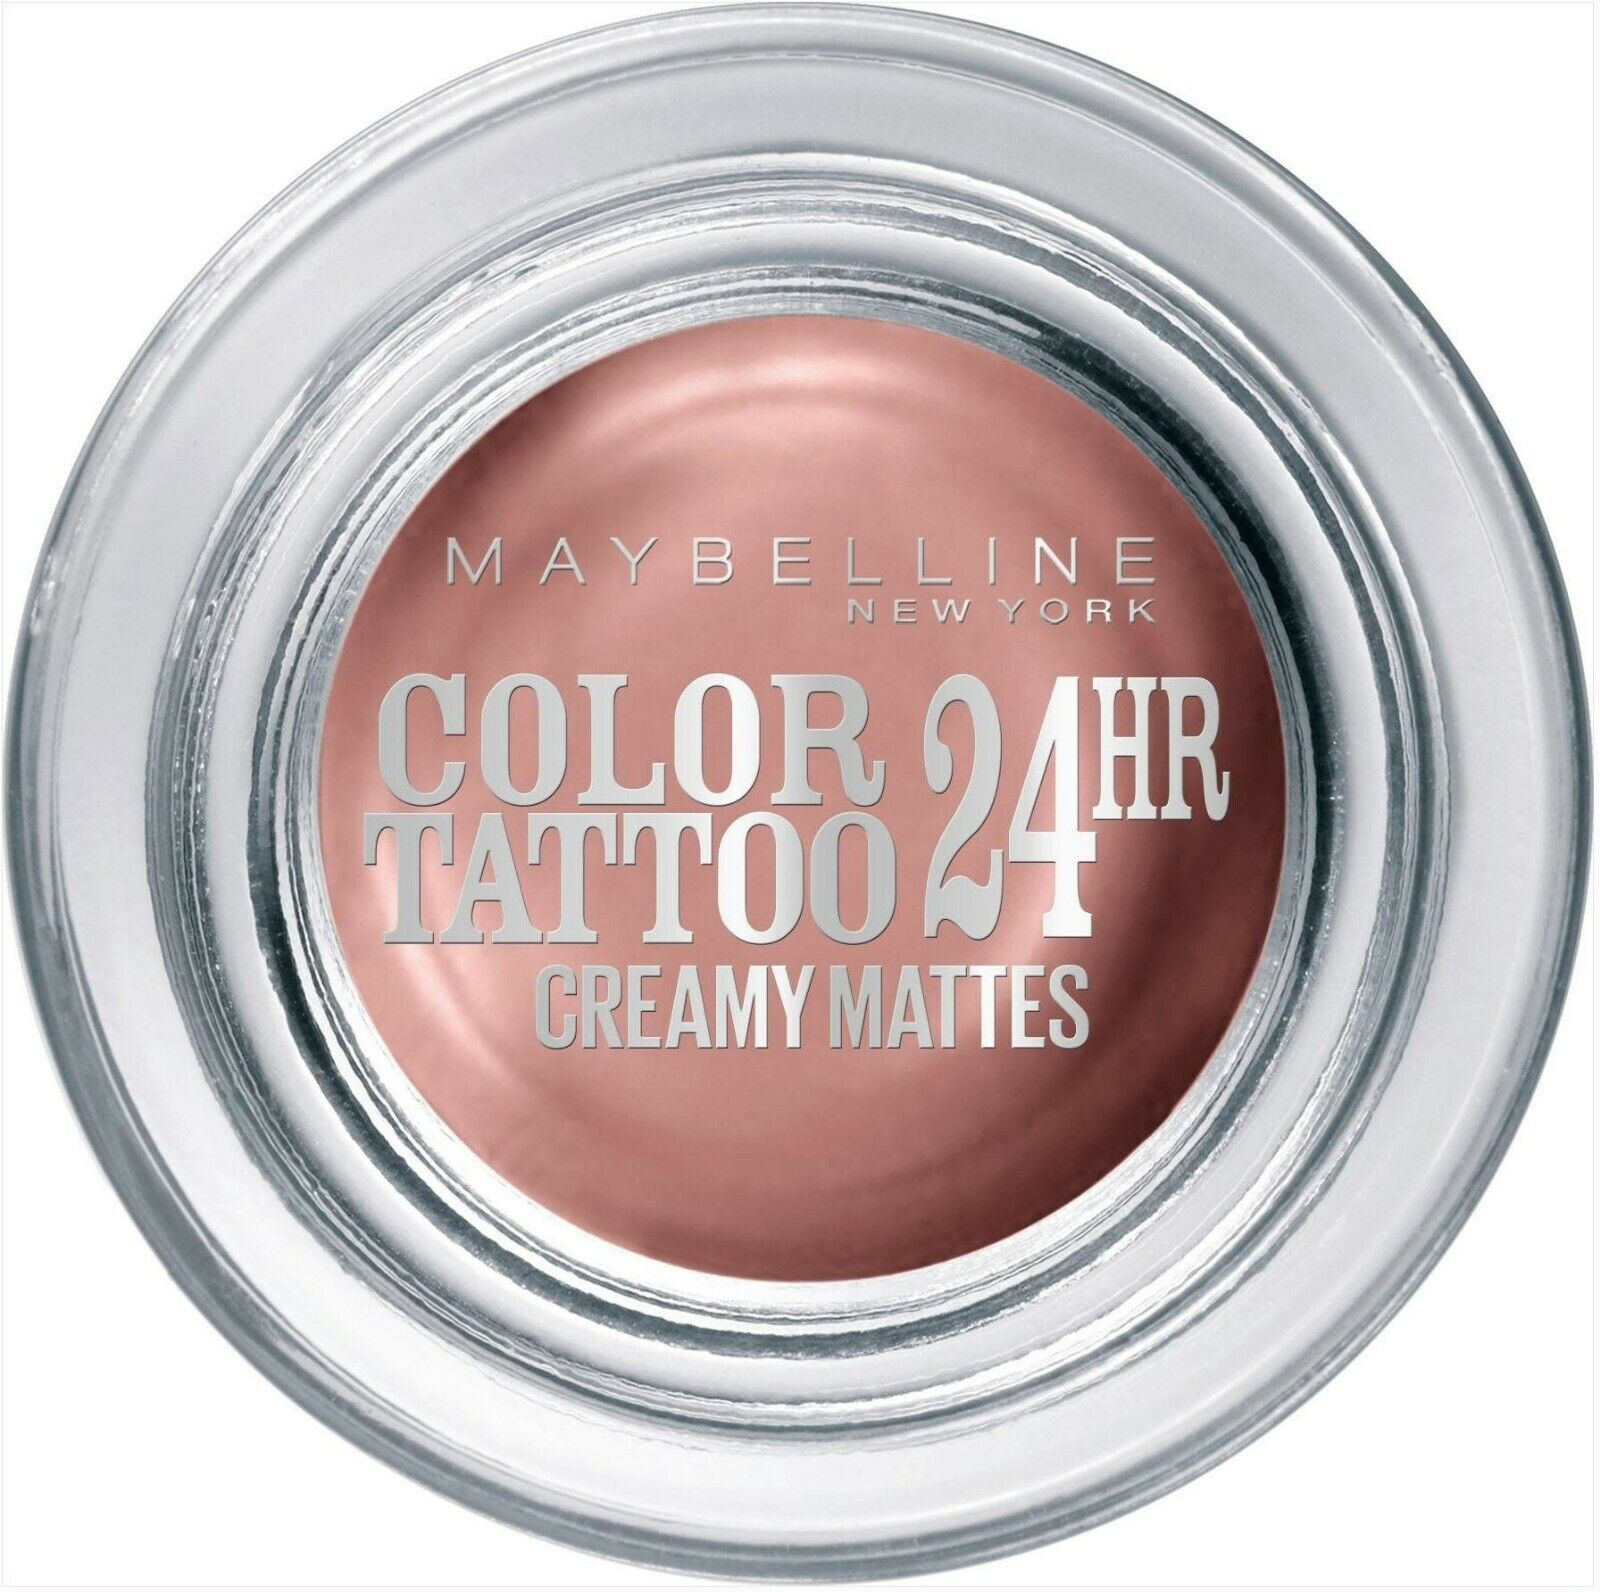 Maybelline Color Tattoo Gel Cream Lidschatten Eyeshadow Matt 91 Creme De Rose 4g